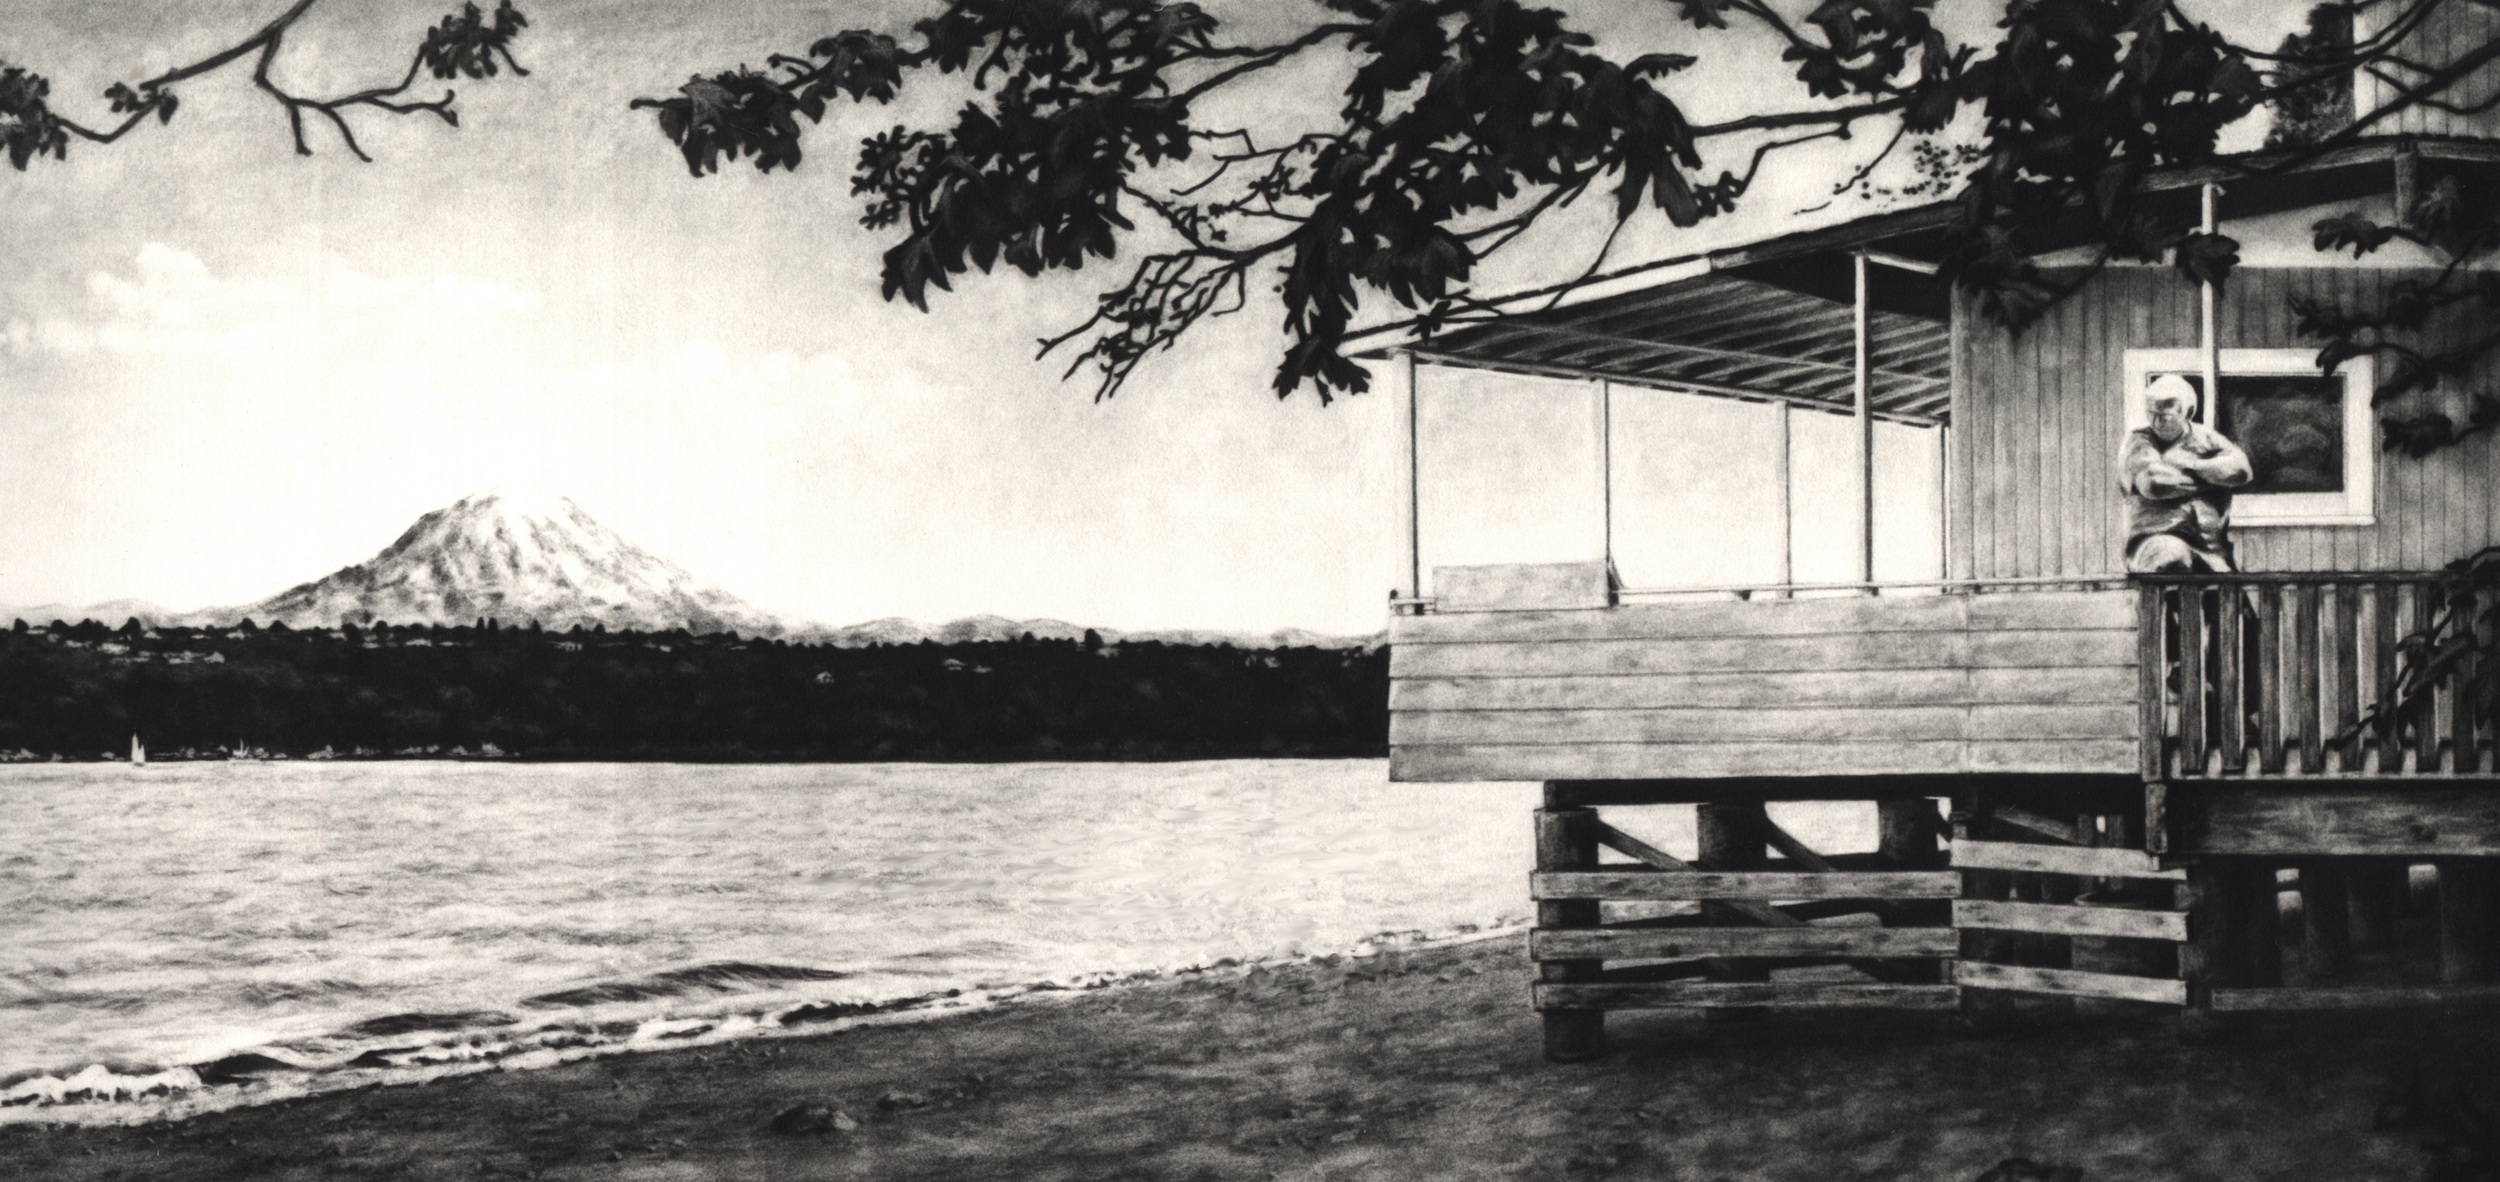 My Uncle built the end cabin just beyond the Nesika Beach Community of Gig Harbor in the 50s. My aunt, Lita, is barely visible in the window.